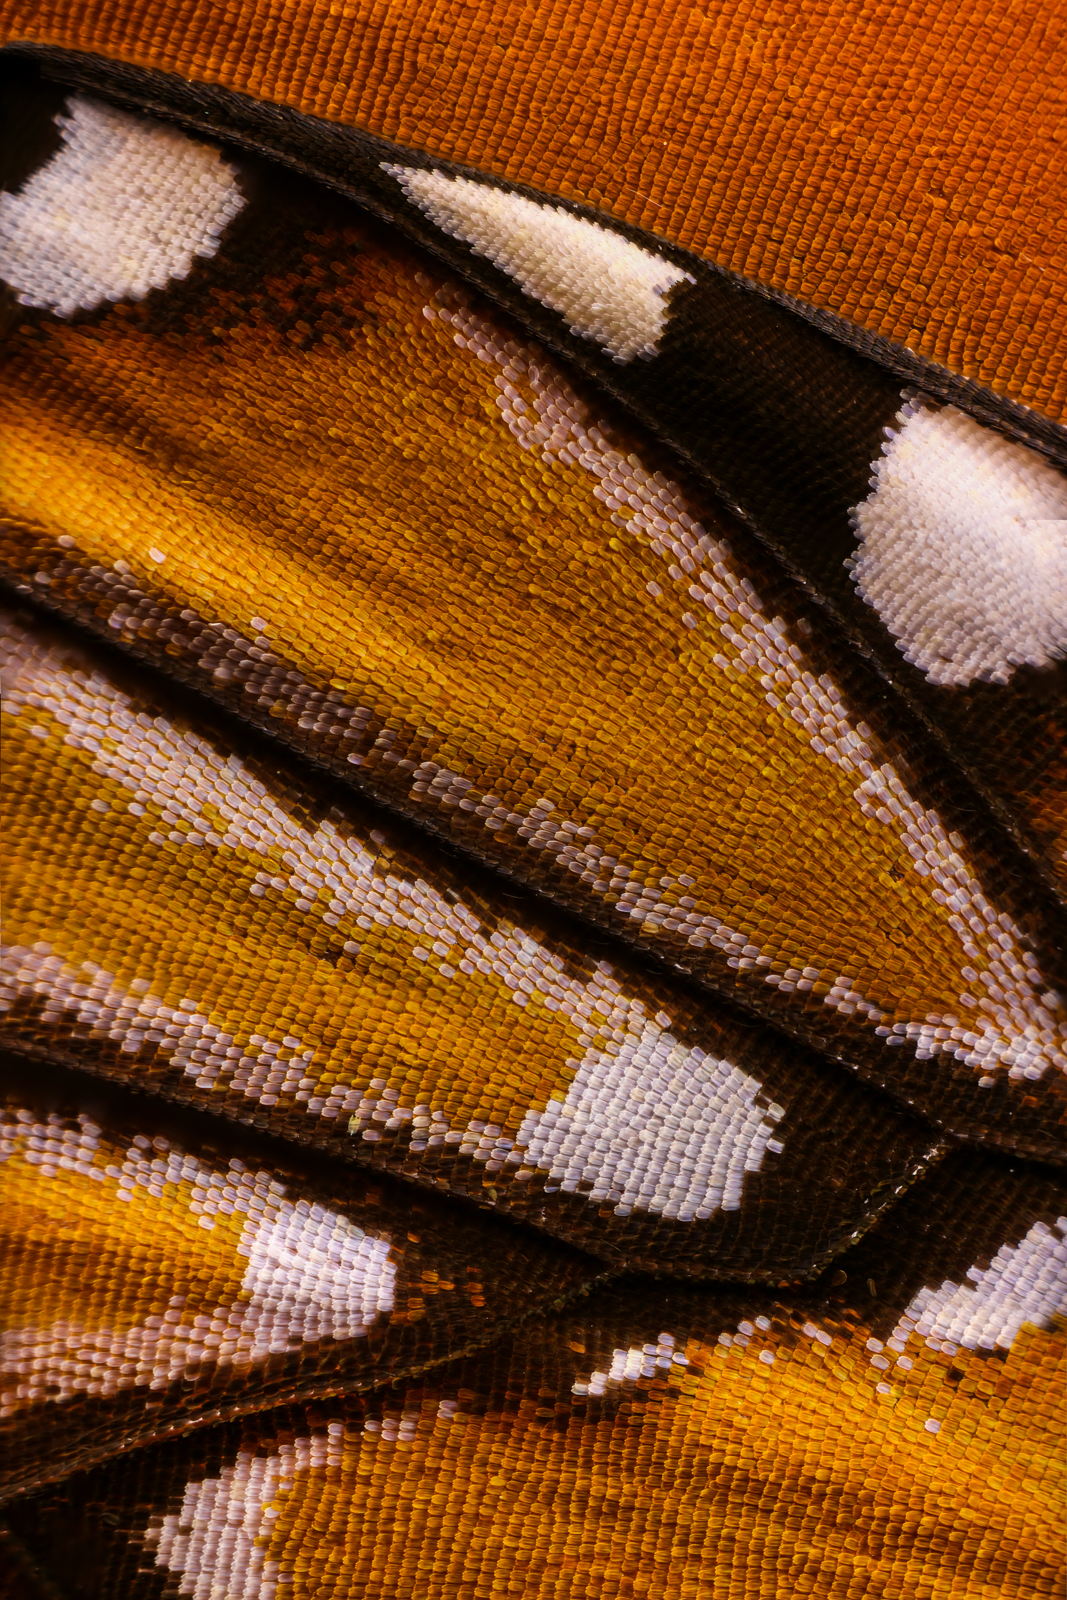 Macro photo of butterfly wing 5 2 Wonderful Macro Photography of Butterflies Wing by Chris Perani